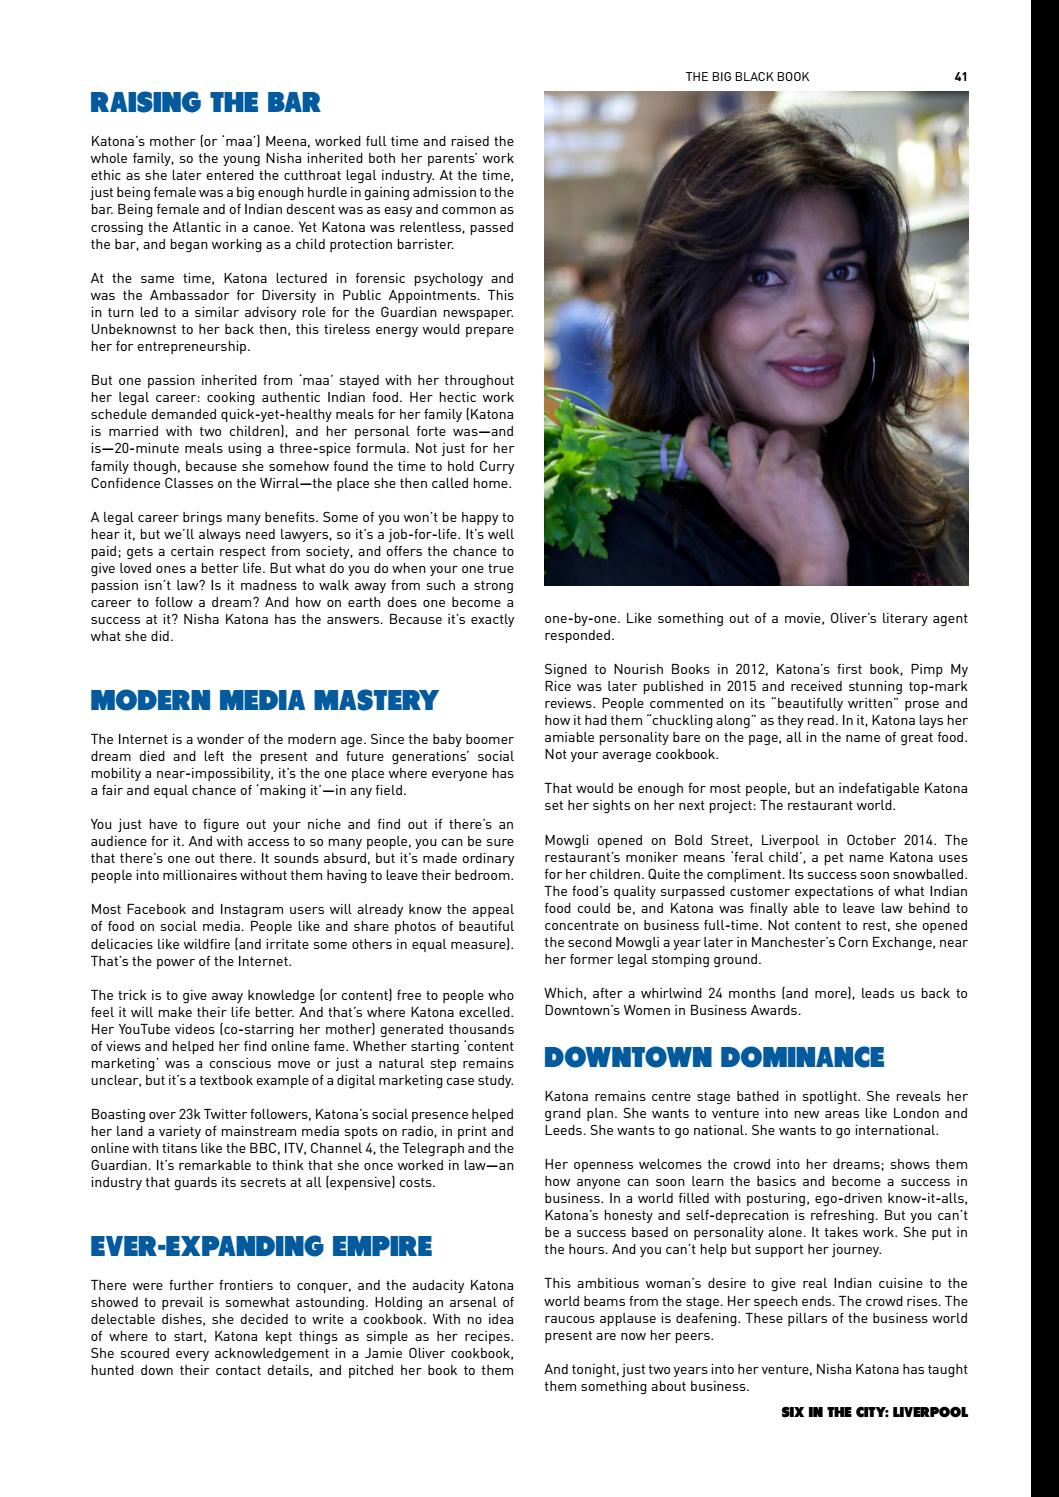 The Big Black Book 2017 by Downtown in Business - issuu